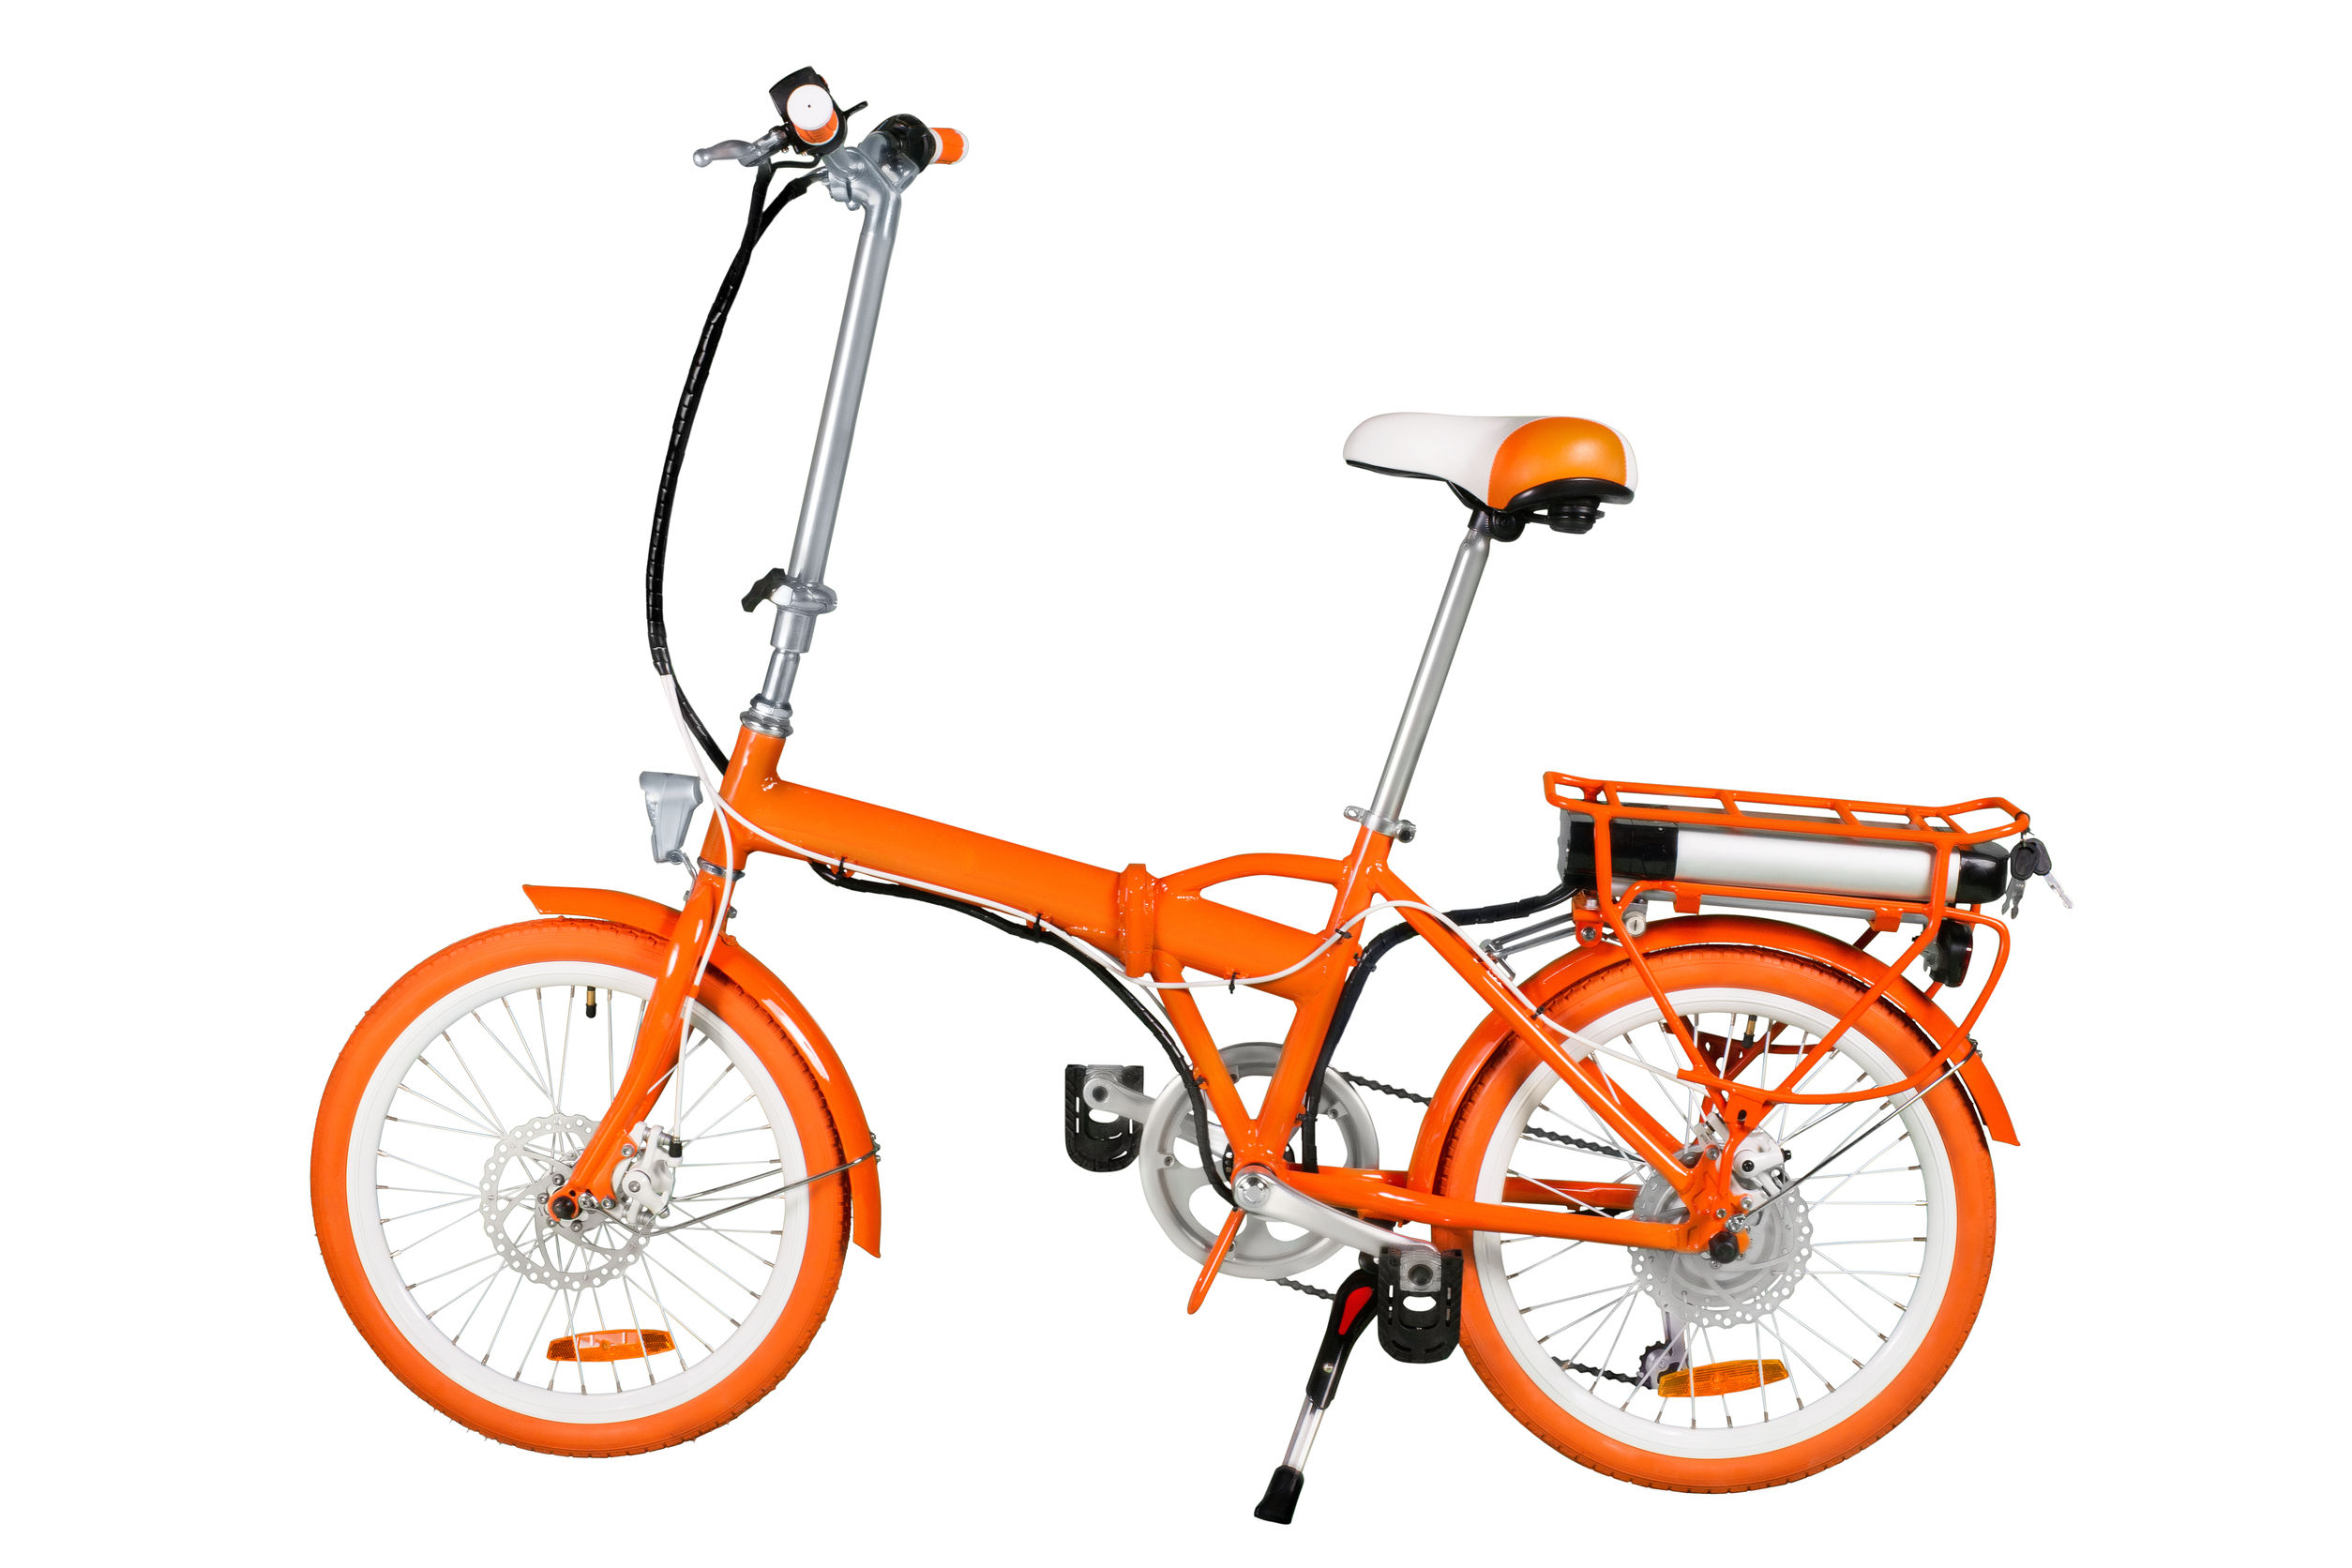 Orange folding electric bike isolated on a white background with a full clipping path